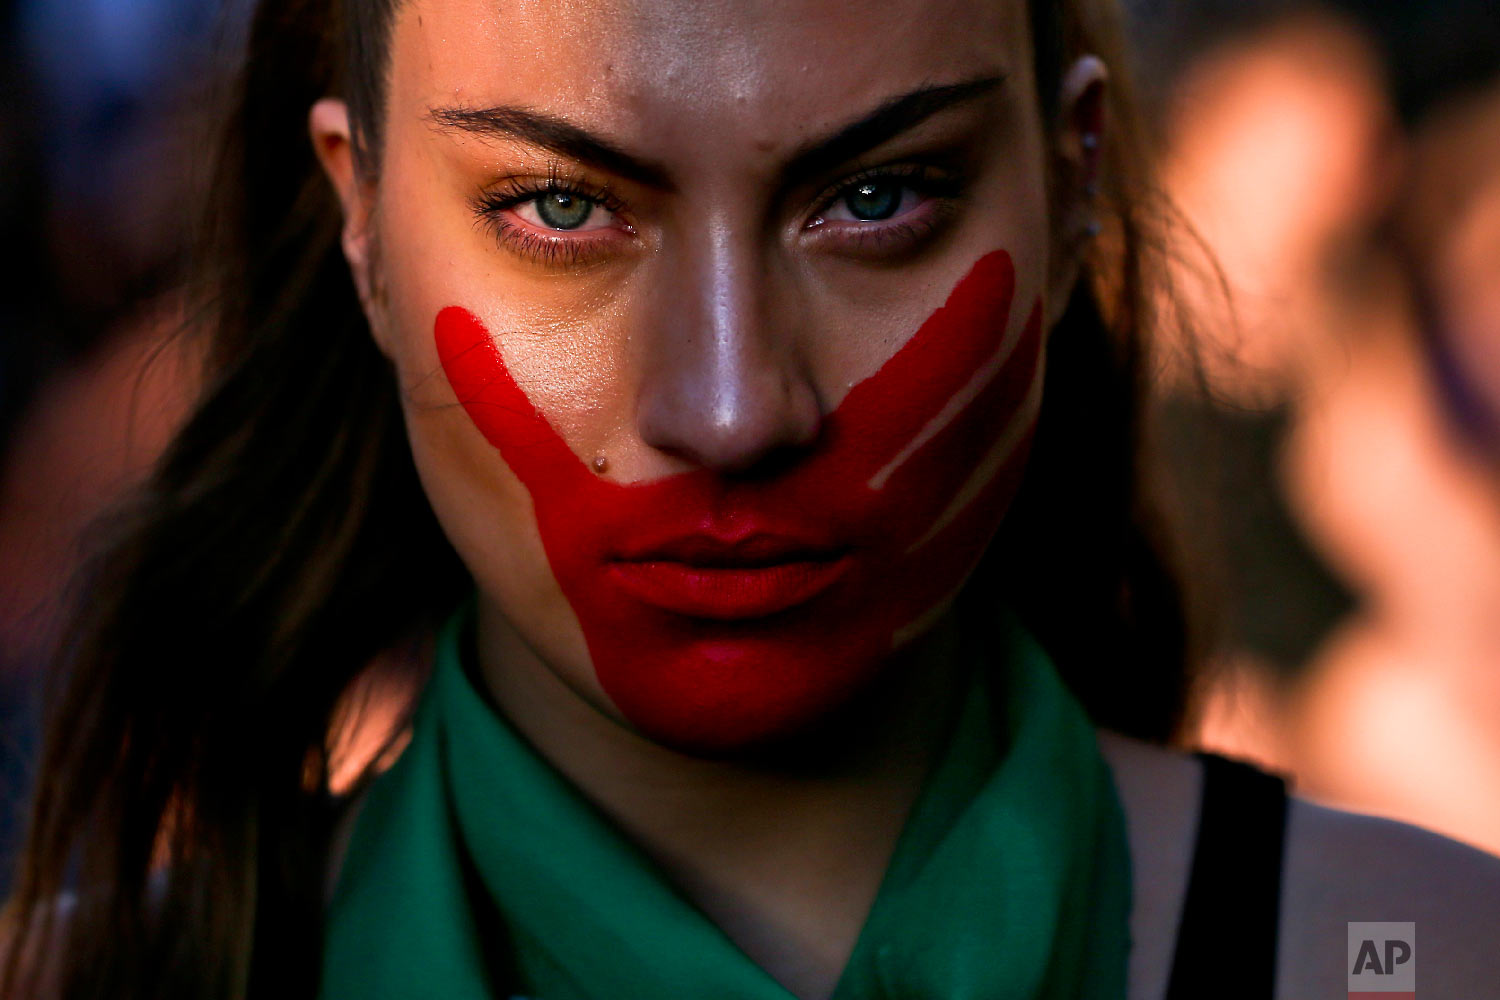 A woman with her face painted takes part in a march against sexism and gender violence, in Santiago, Chile, Thursday, Nov. 22, 2018. (AP Photo/Esteban Felix)